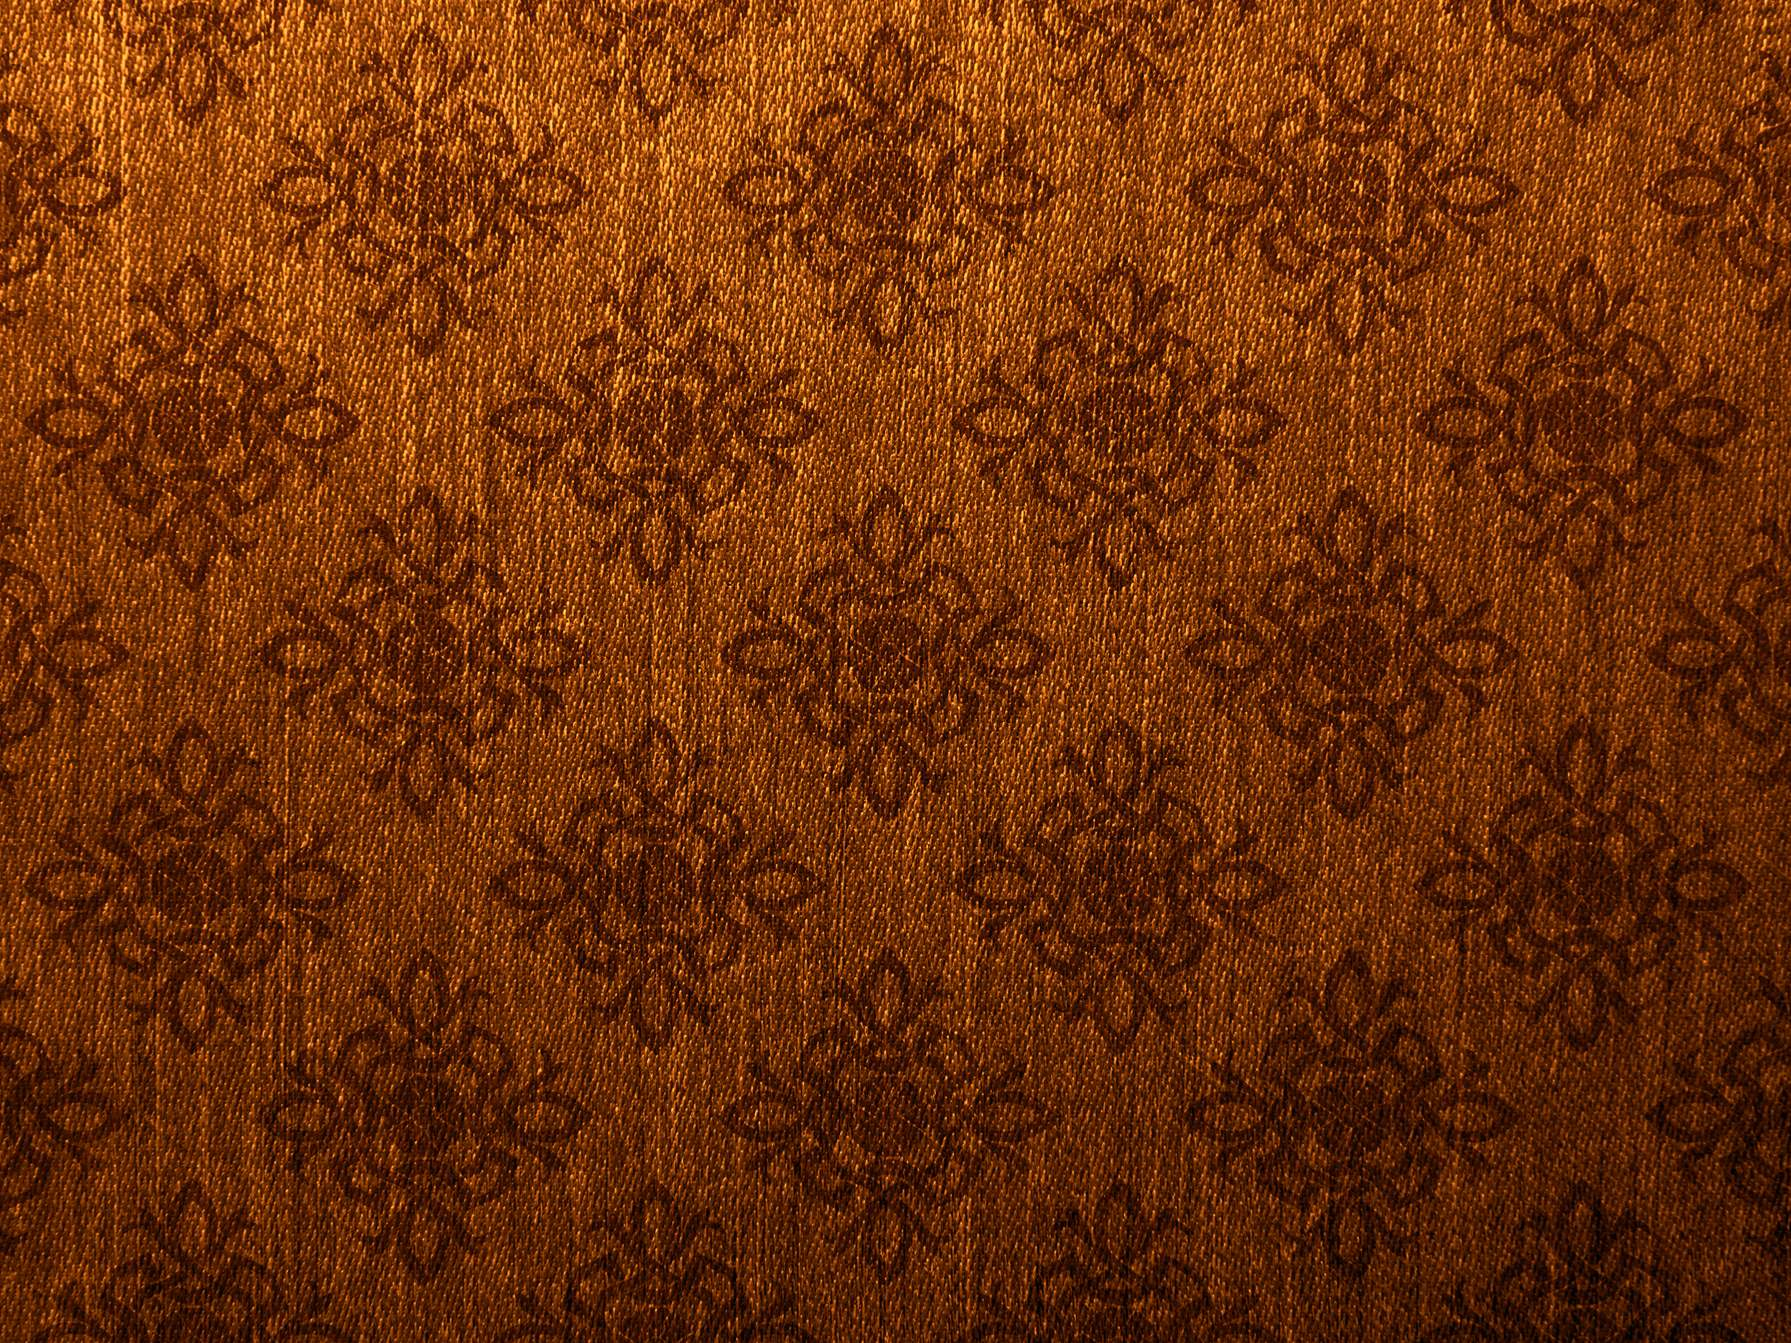 Damask Vintage Brown Gold Canvas Texture Background Photohdx